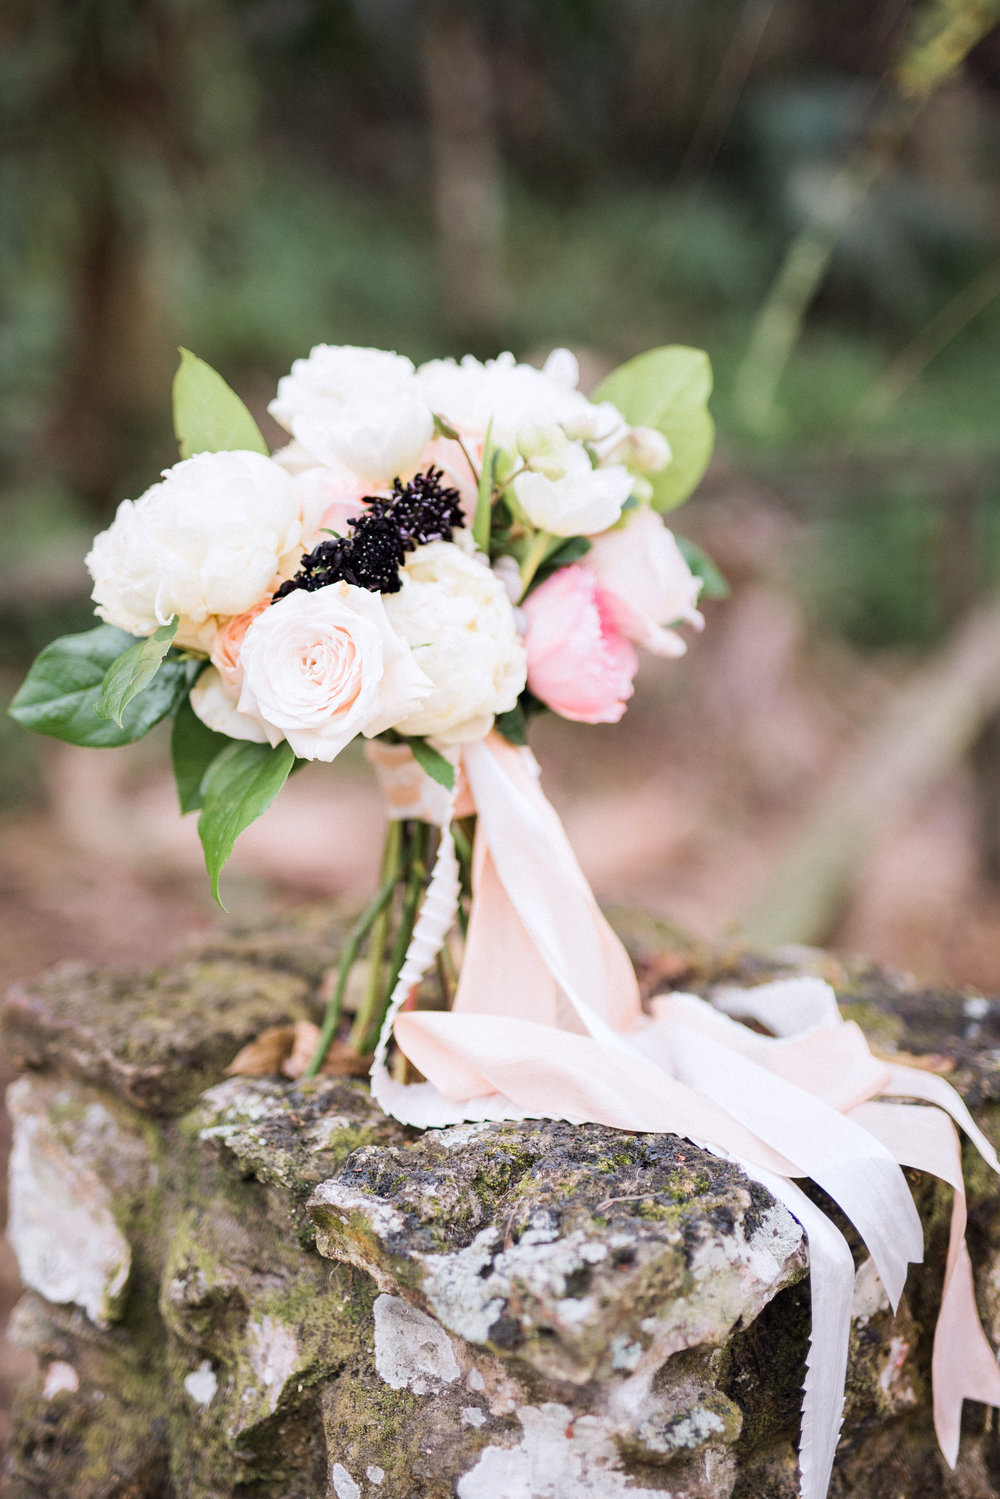 Free+form,+loose,+garden+style+bridal+bouquet+created+with+peonies+and+roses+in+blush+and+white,+with+loose,+free+flowing+silk+ribbon+around+the+clutch.jpg